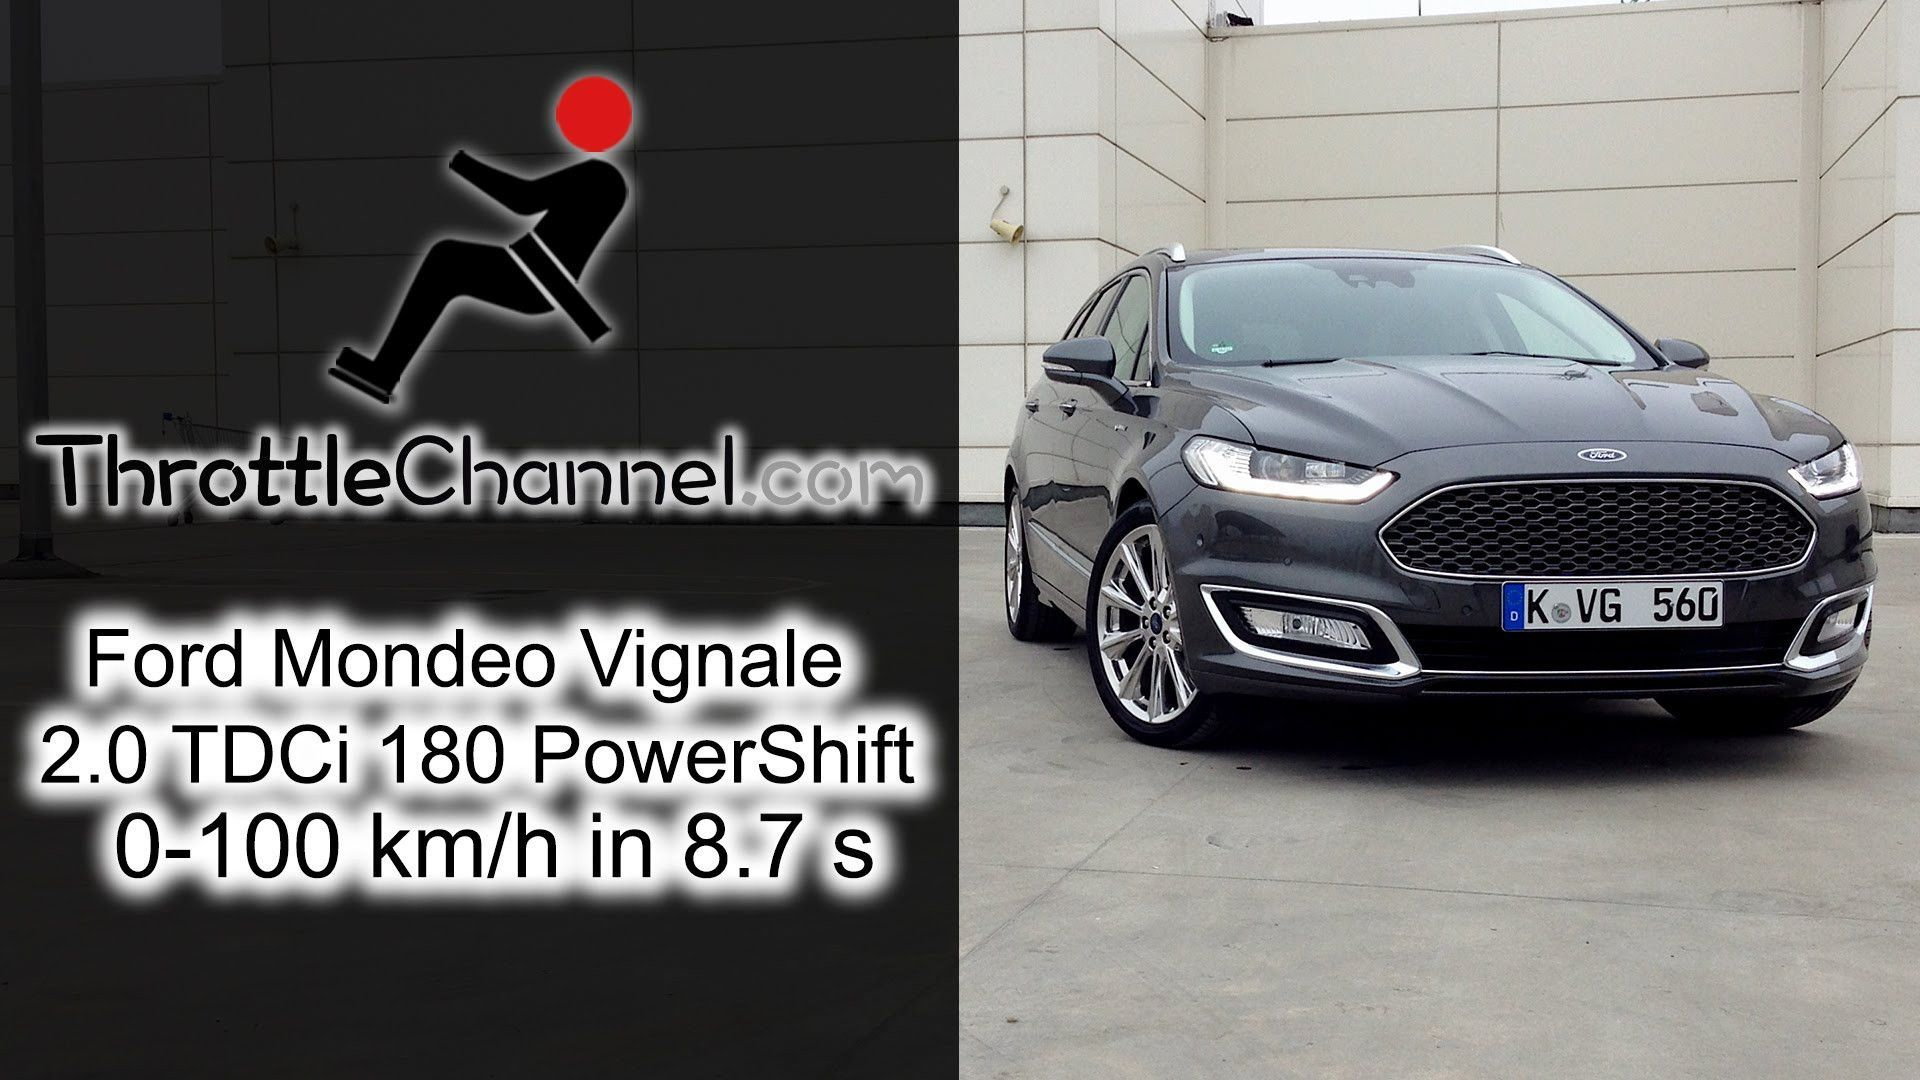 2020 Ford Mondeo Vignale Ford Mondeo Chevy Trailblazer Ford